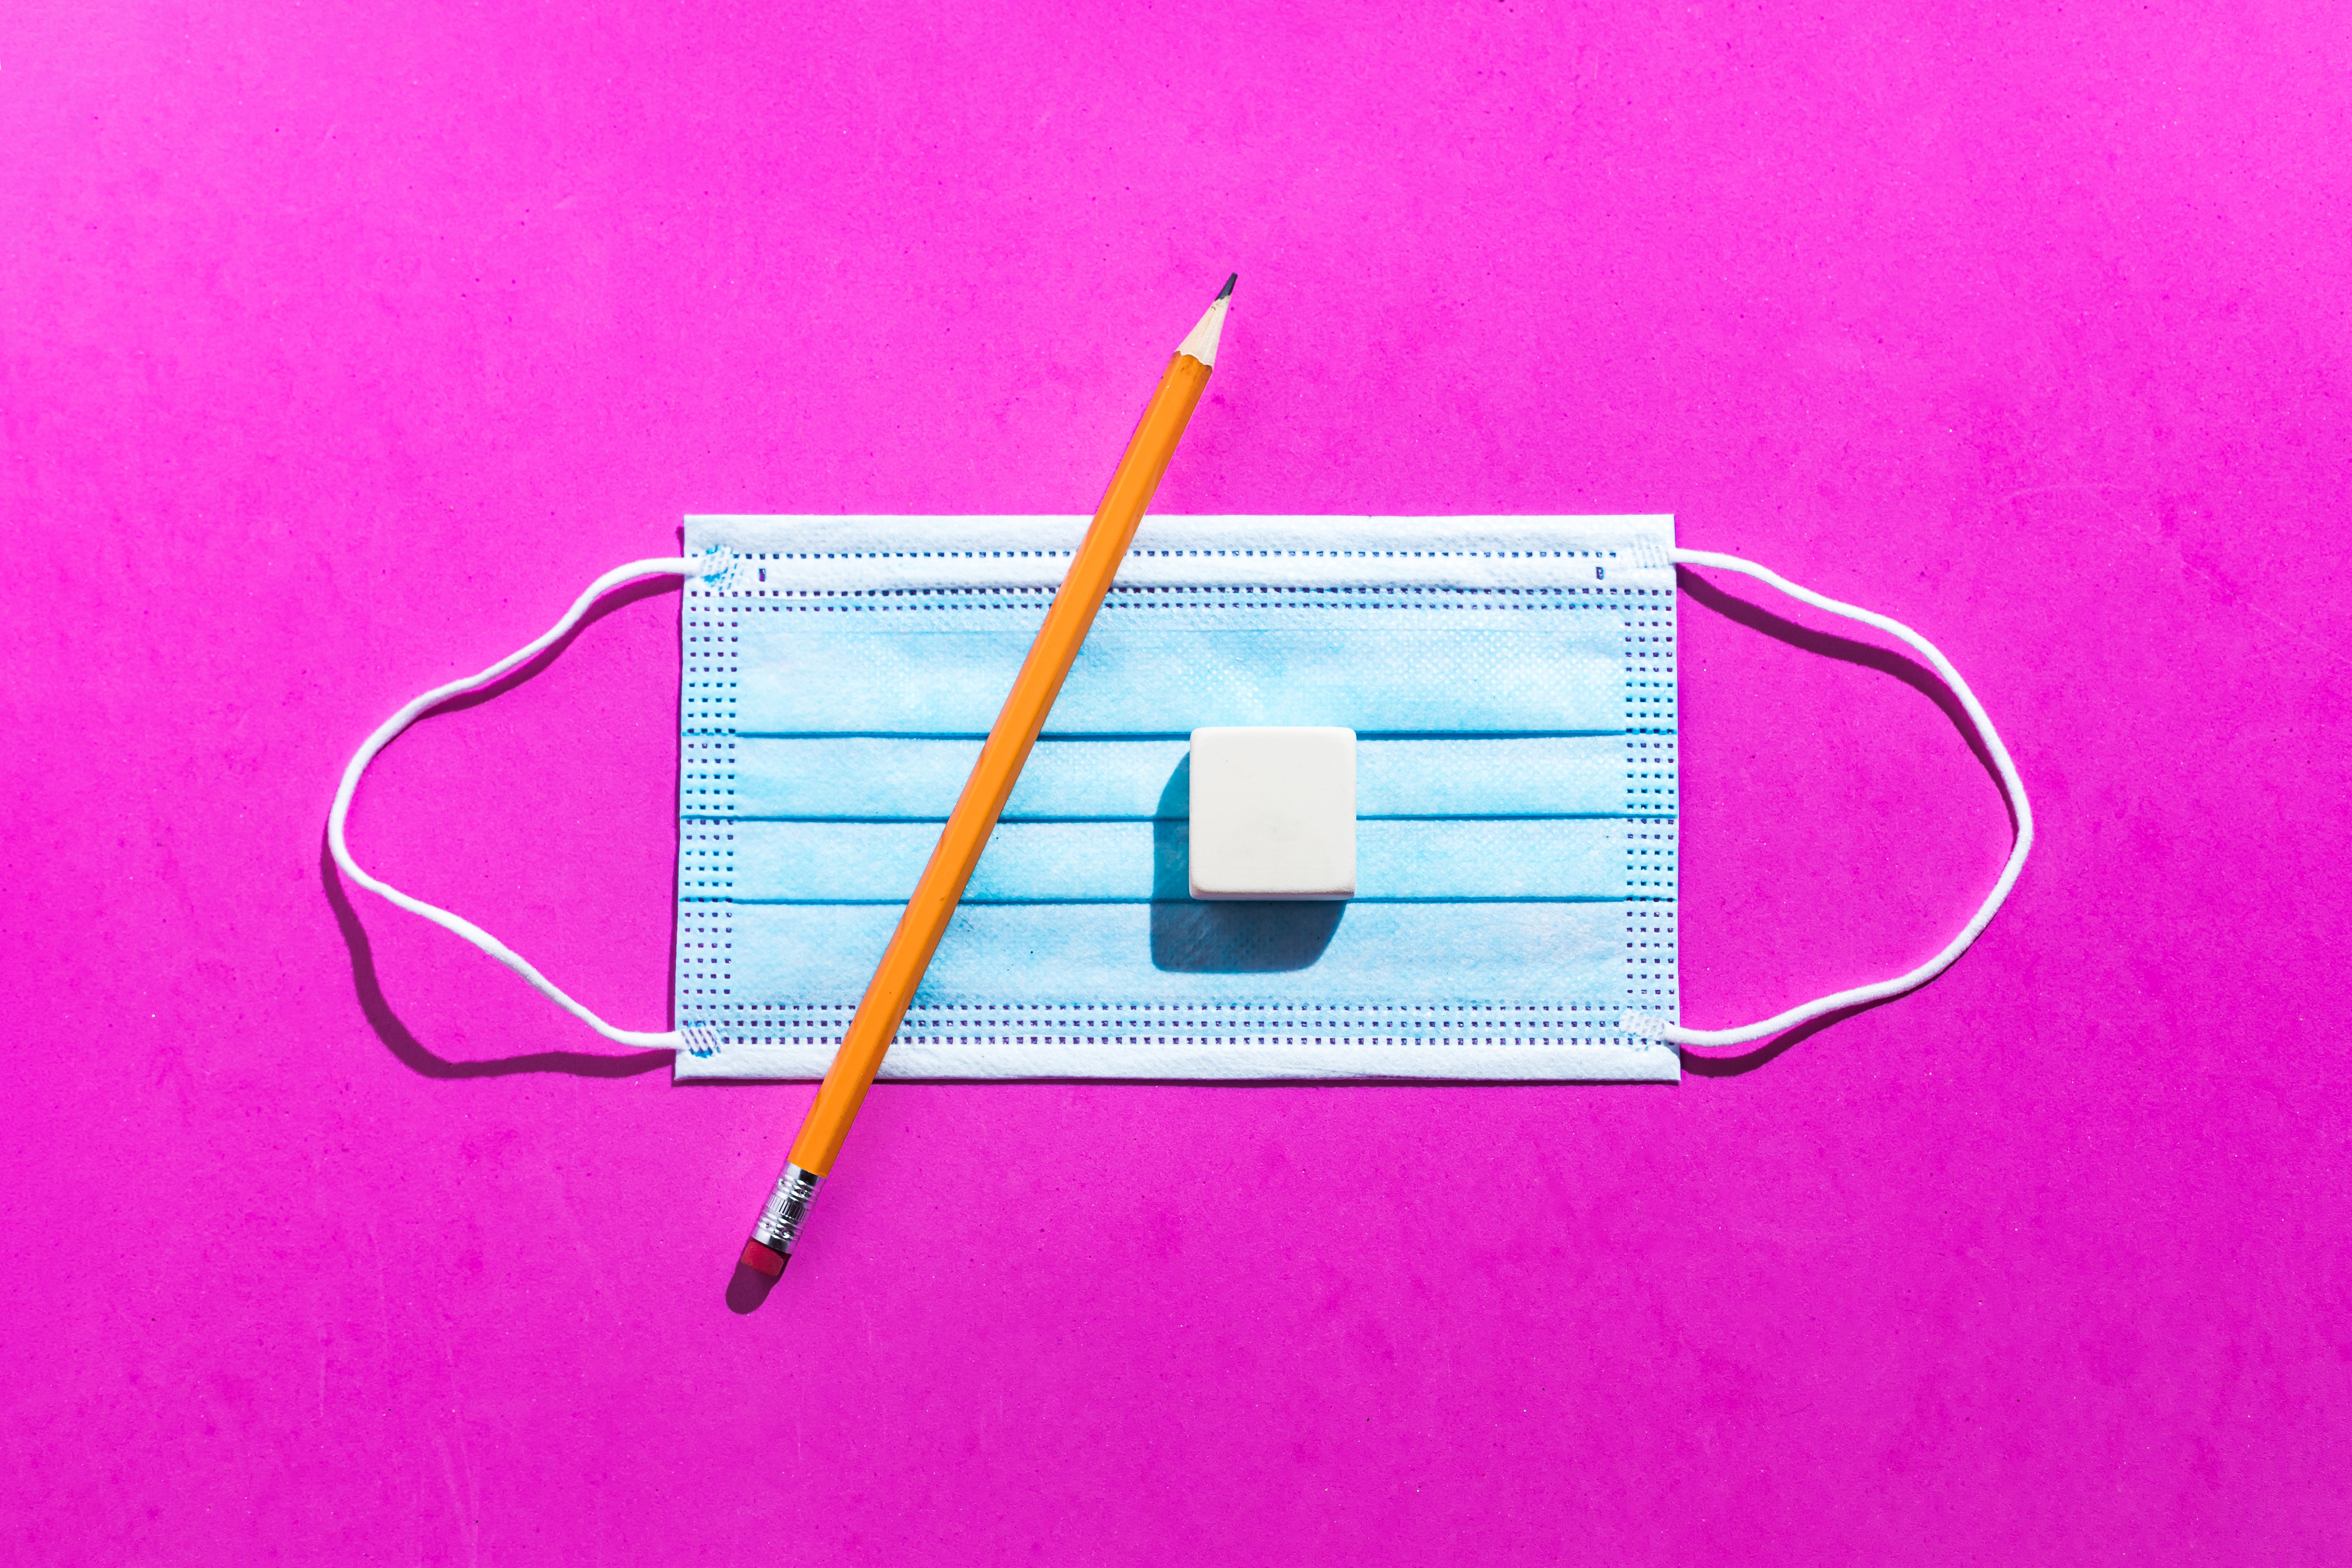 Pencil, surgical mask and eraser rubber from above on pink background. Office, school, coronavirus, COVID-19 and protective concept